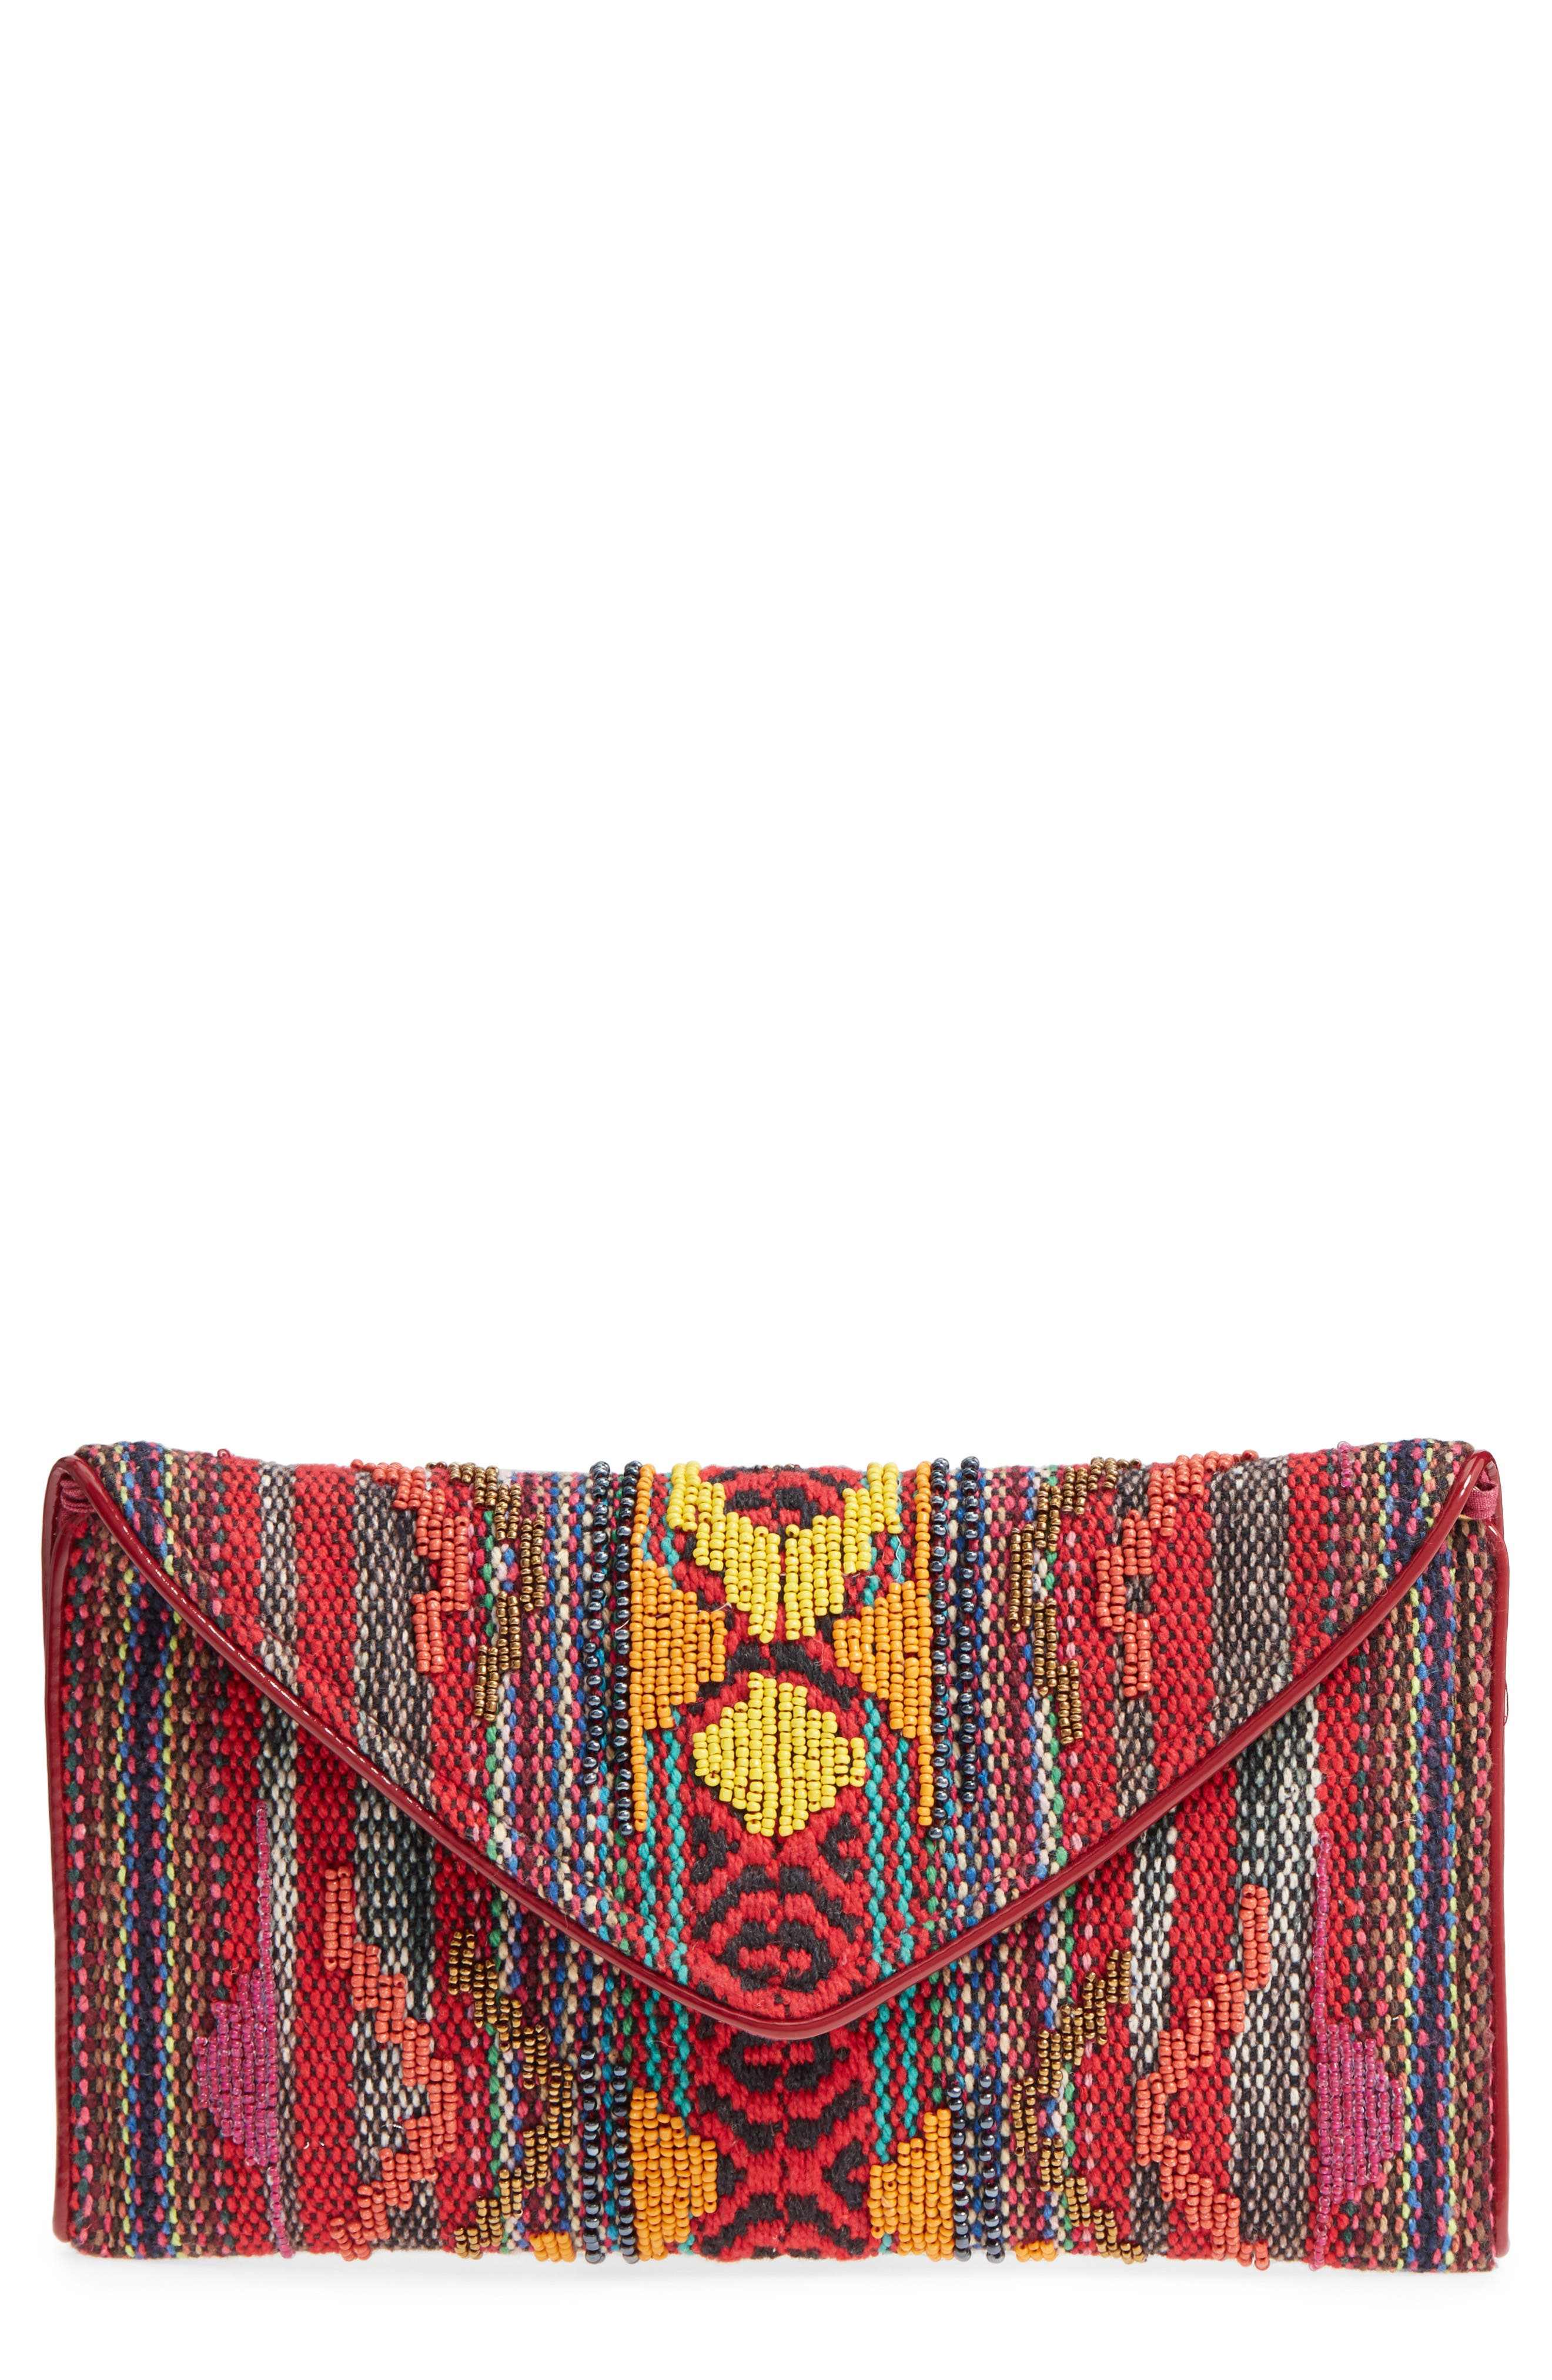 Steve Madden Envelope Printed Fabric Clutch